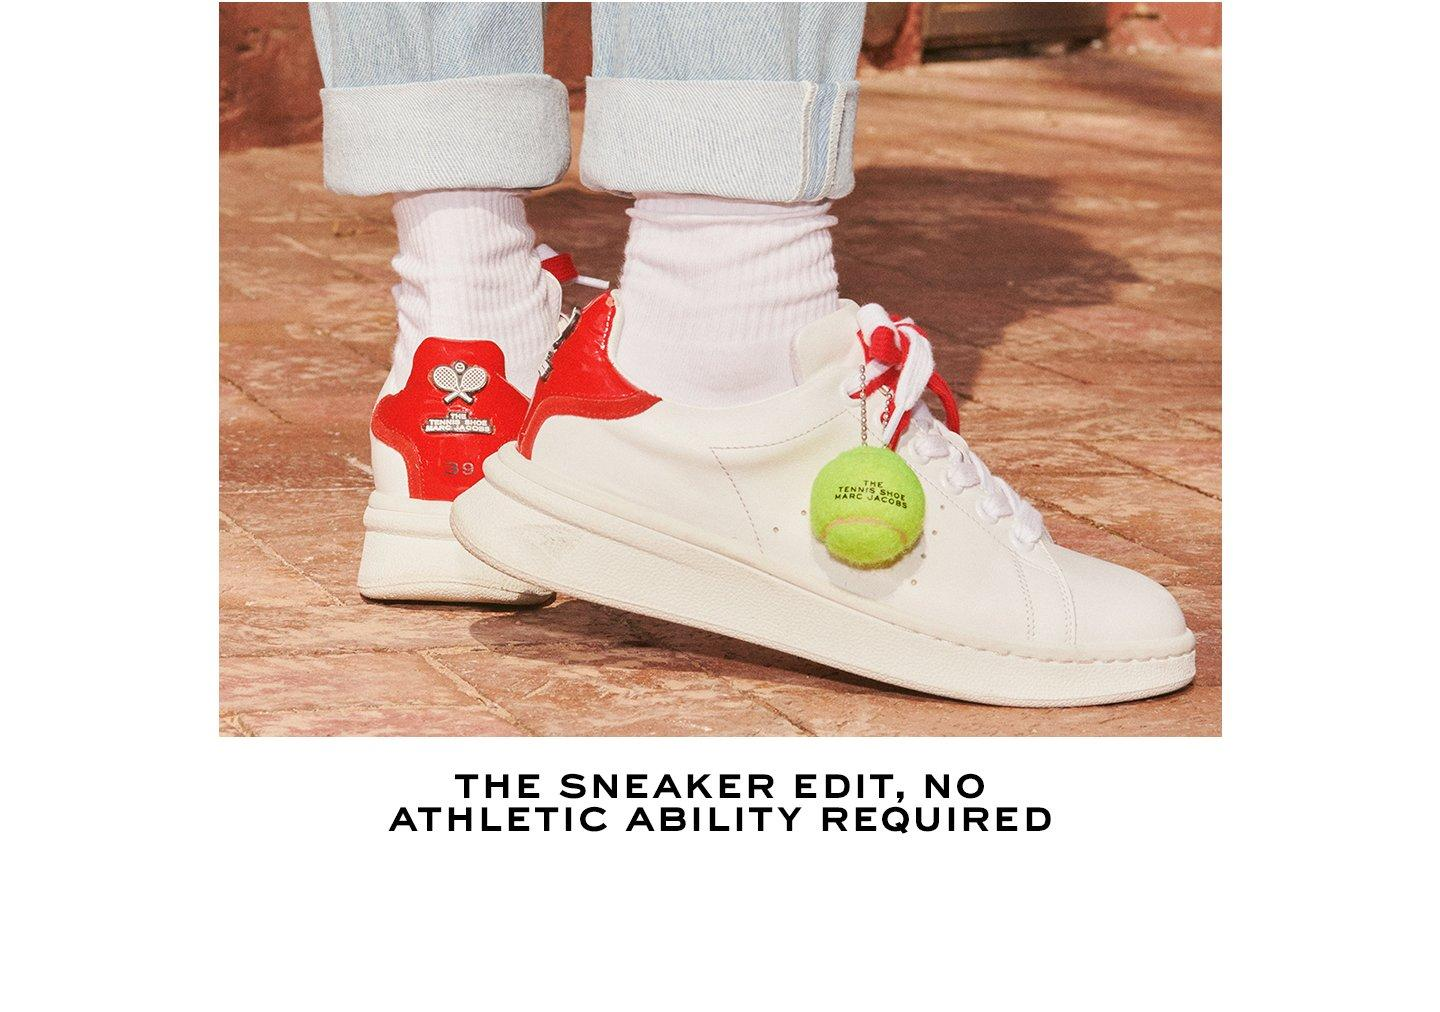 The sneaker edit, no athletics ability required.